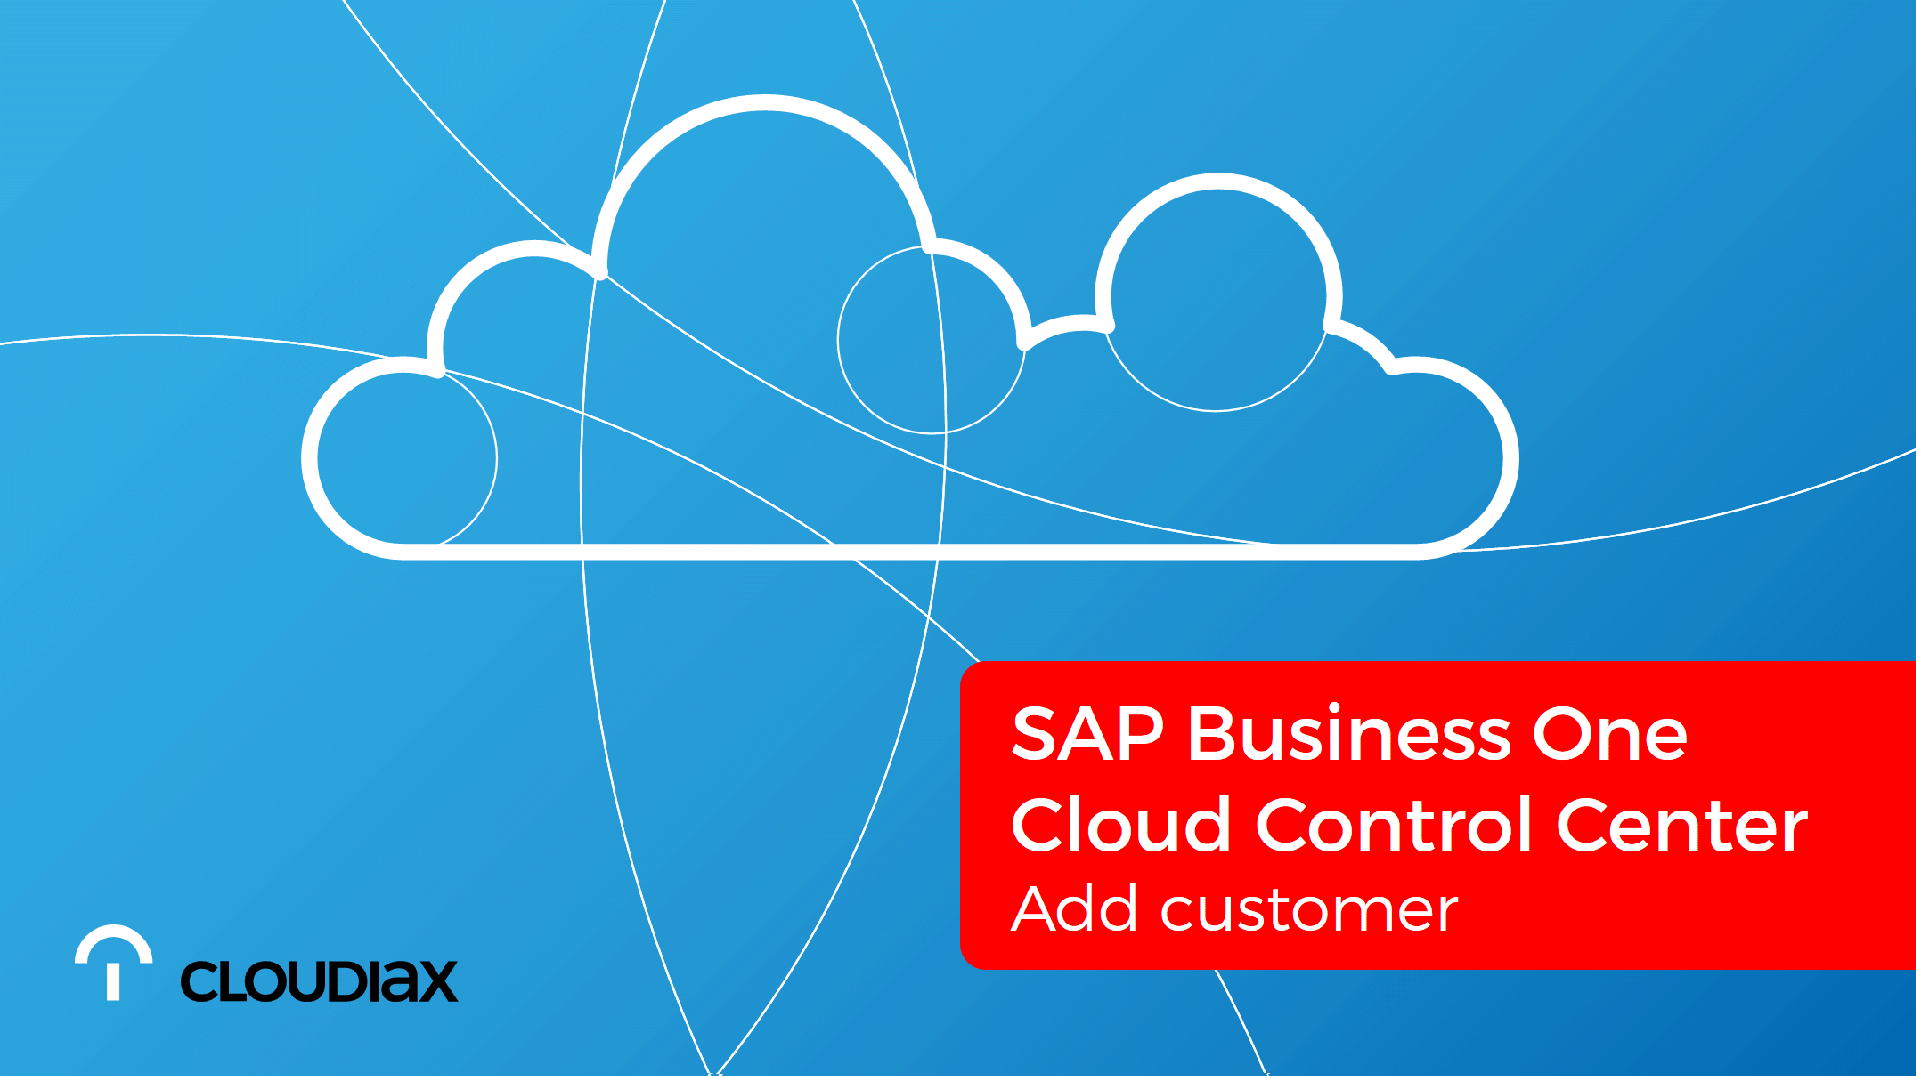 SAP Business One Cloud Control Center- Add customer